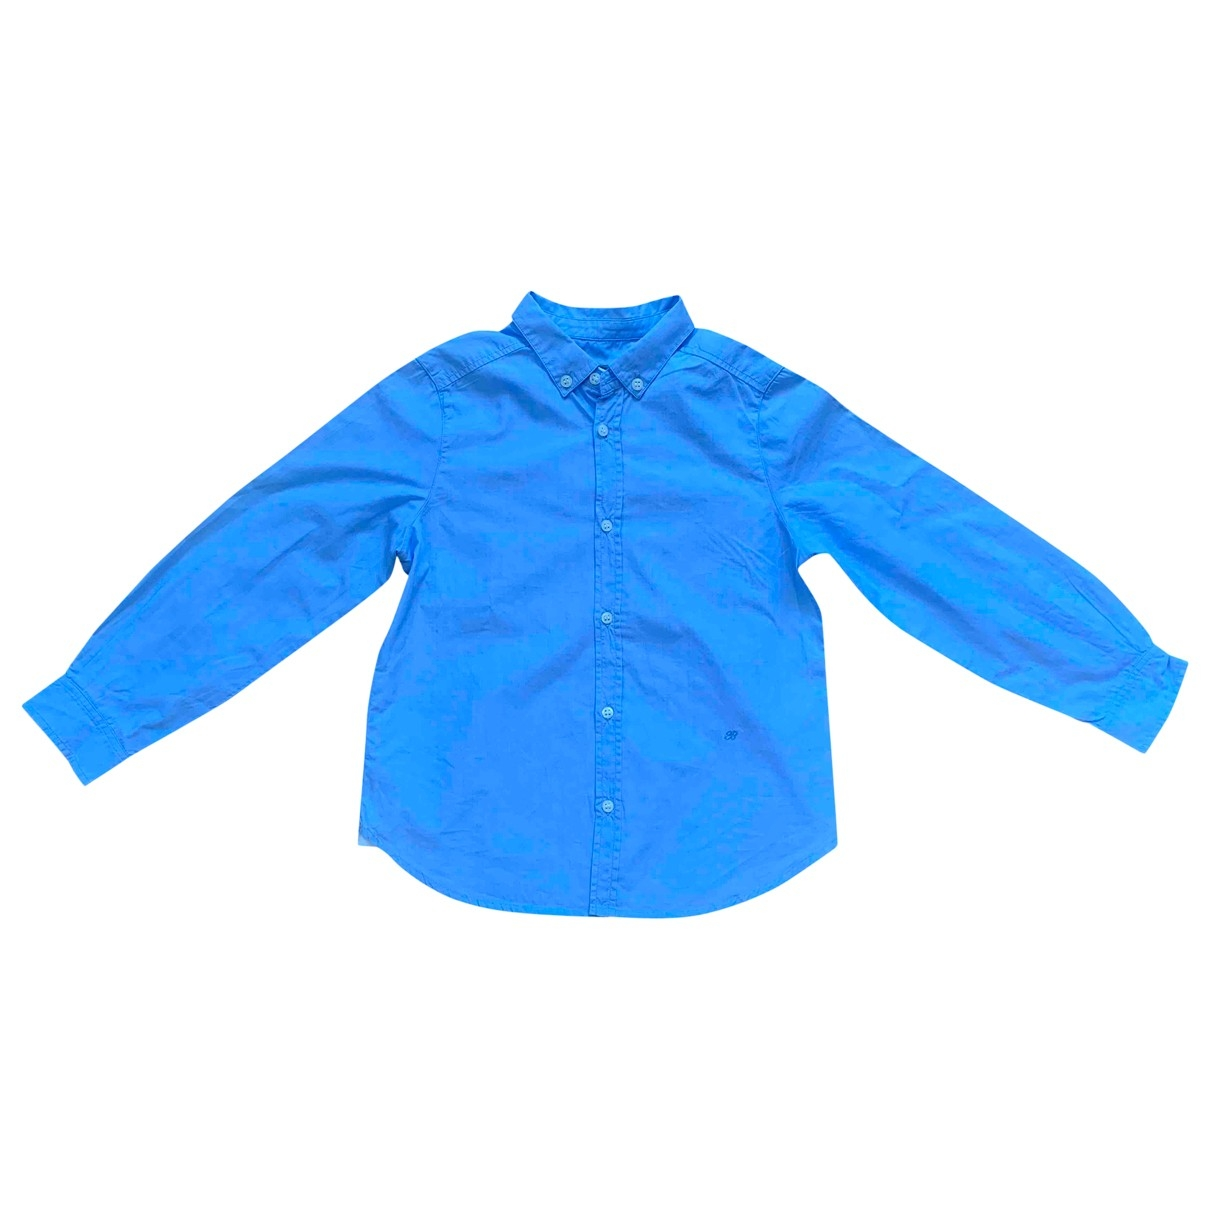 Bonpoint \N Blue Cotton  top for Kids 6 years - up to 114cm FR